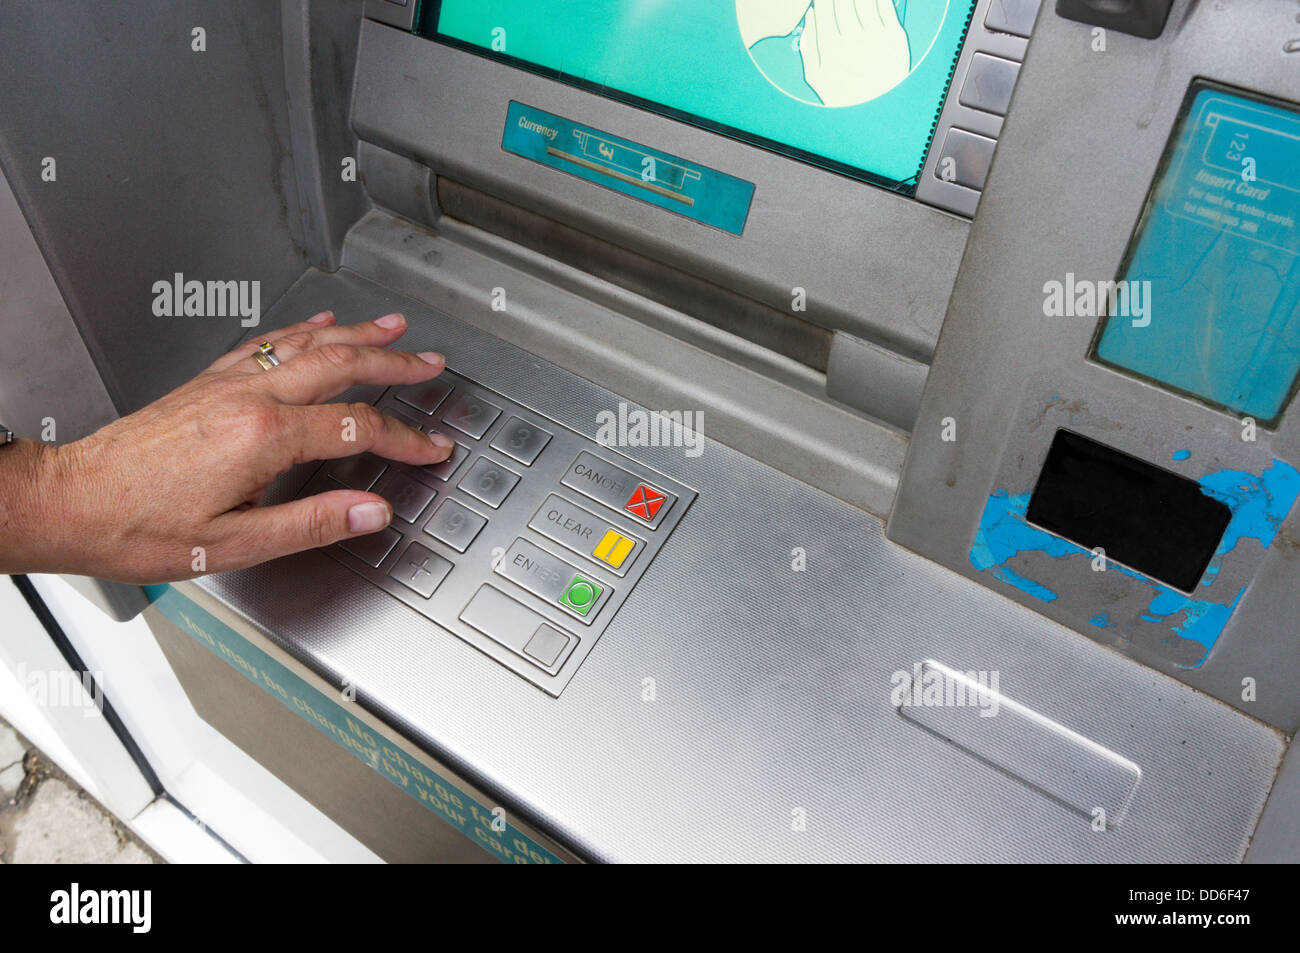 A woman entering her PIN number at a bank cash machine. Stock Photo